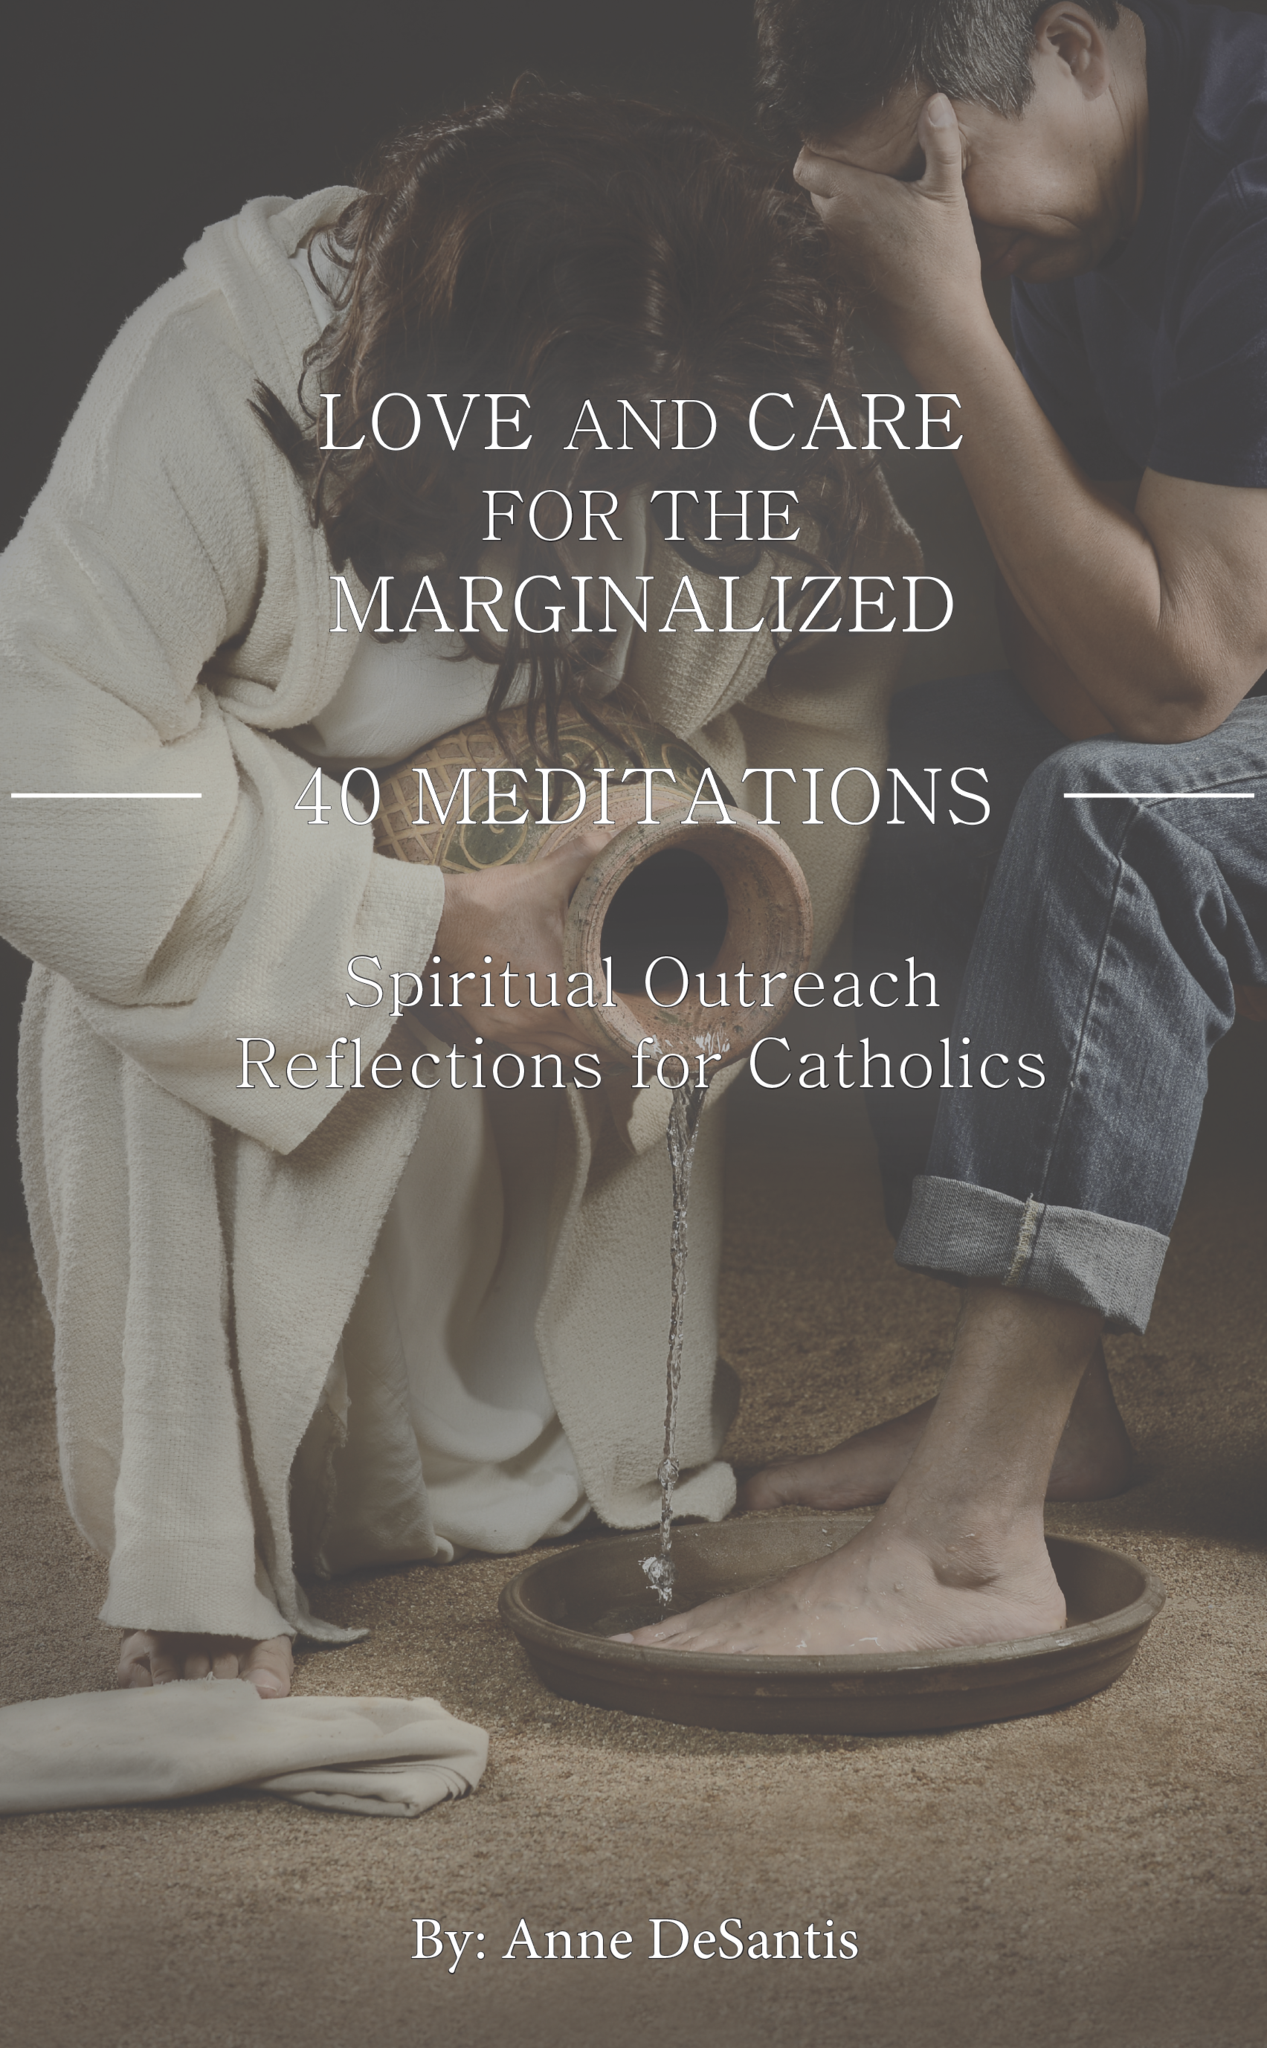 Love and Care for the Marginalized